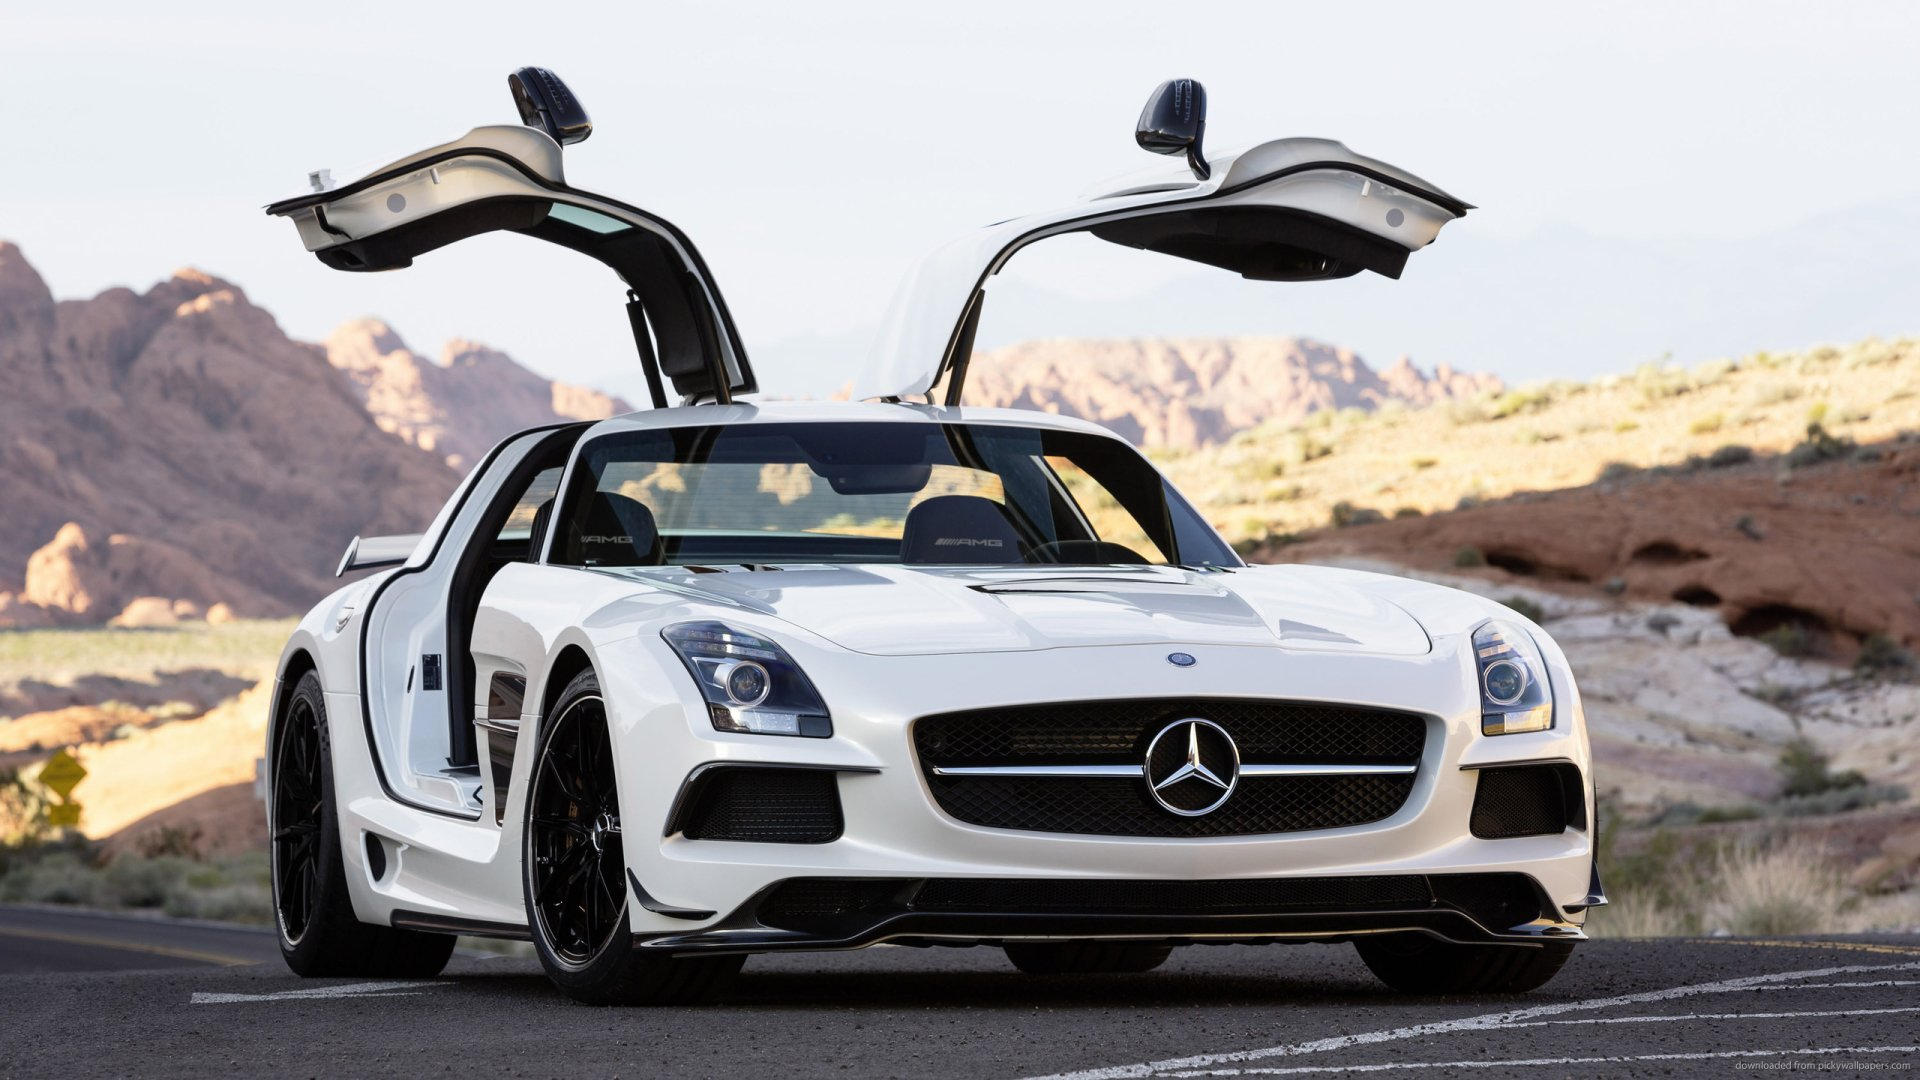 39 Mercedes Benz Sls Amg Hd Wallpapers Background Images Wallpaper Abyss